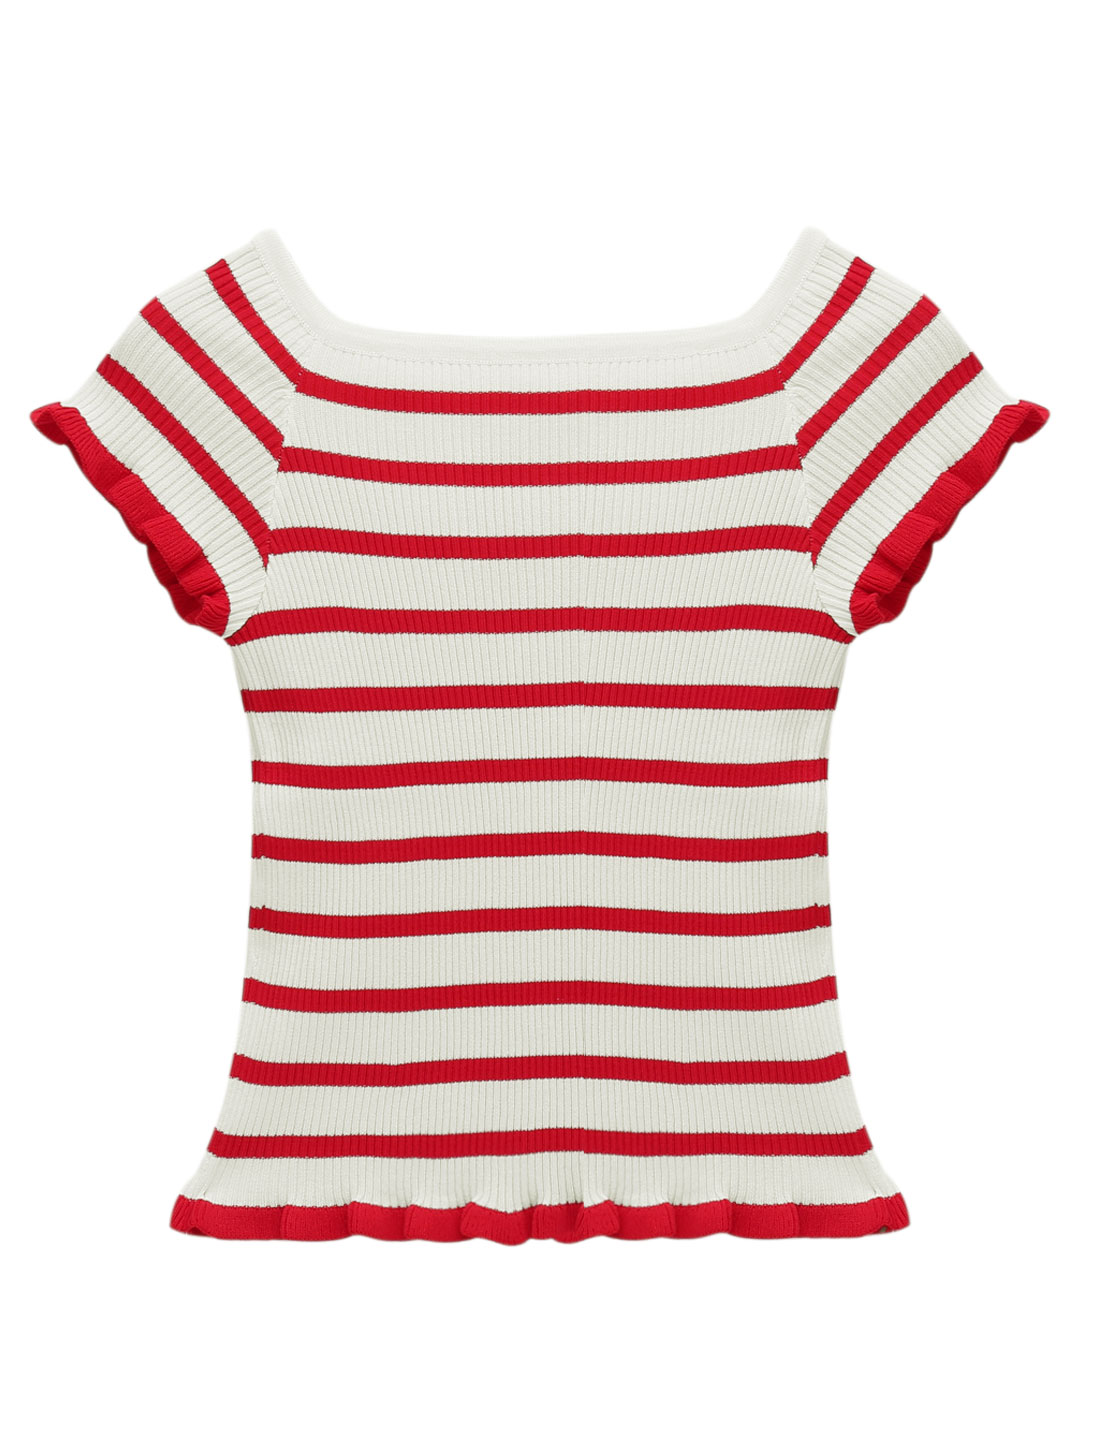 Woman Stripes Boat Neck Ruffled Hem Slim Fit Ribbed Knit Top Red XS